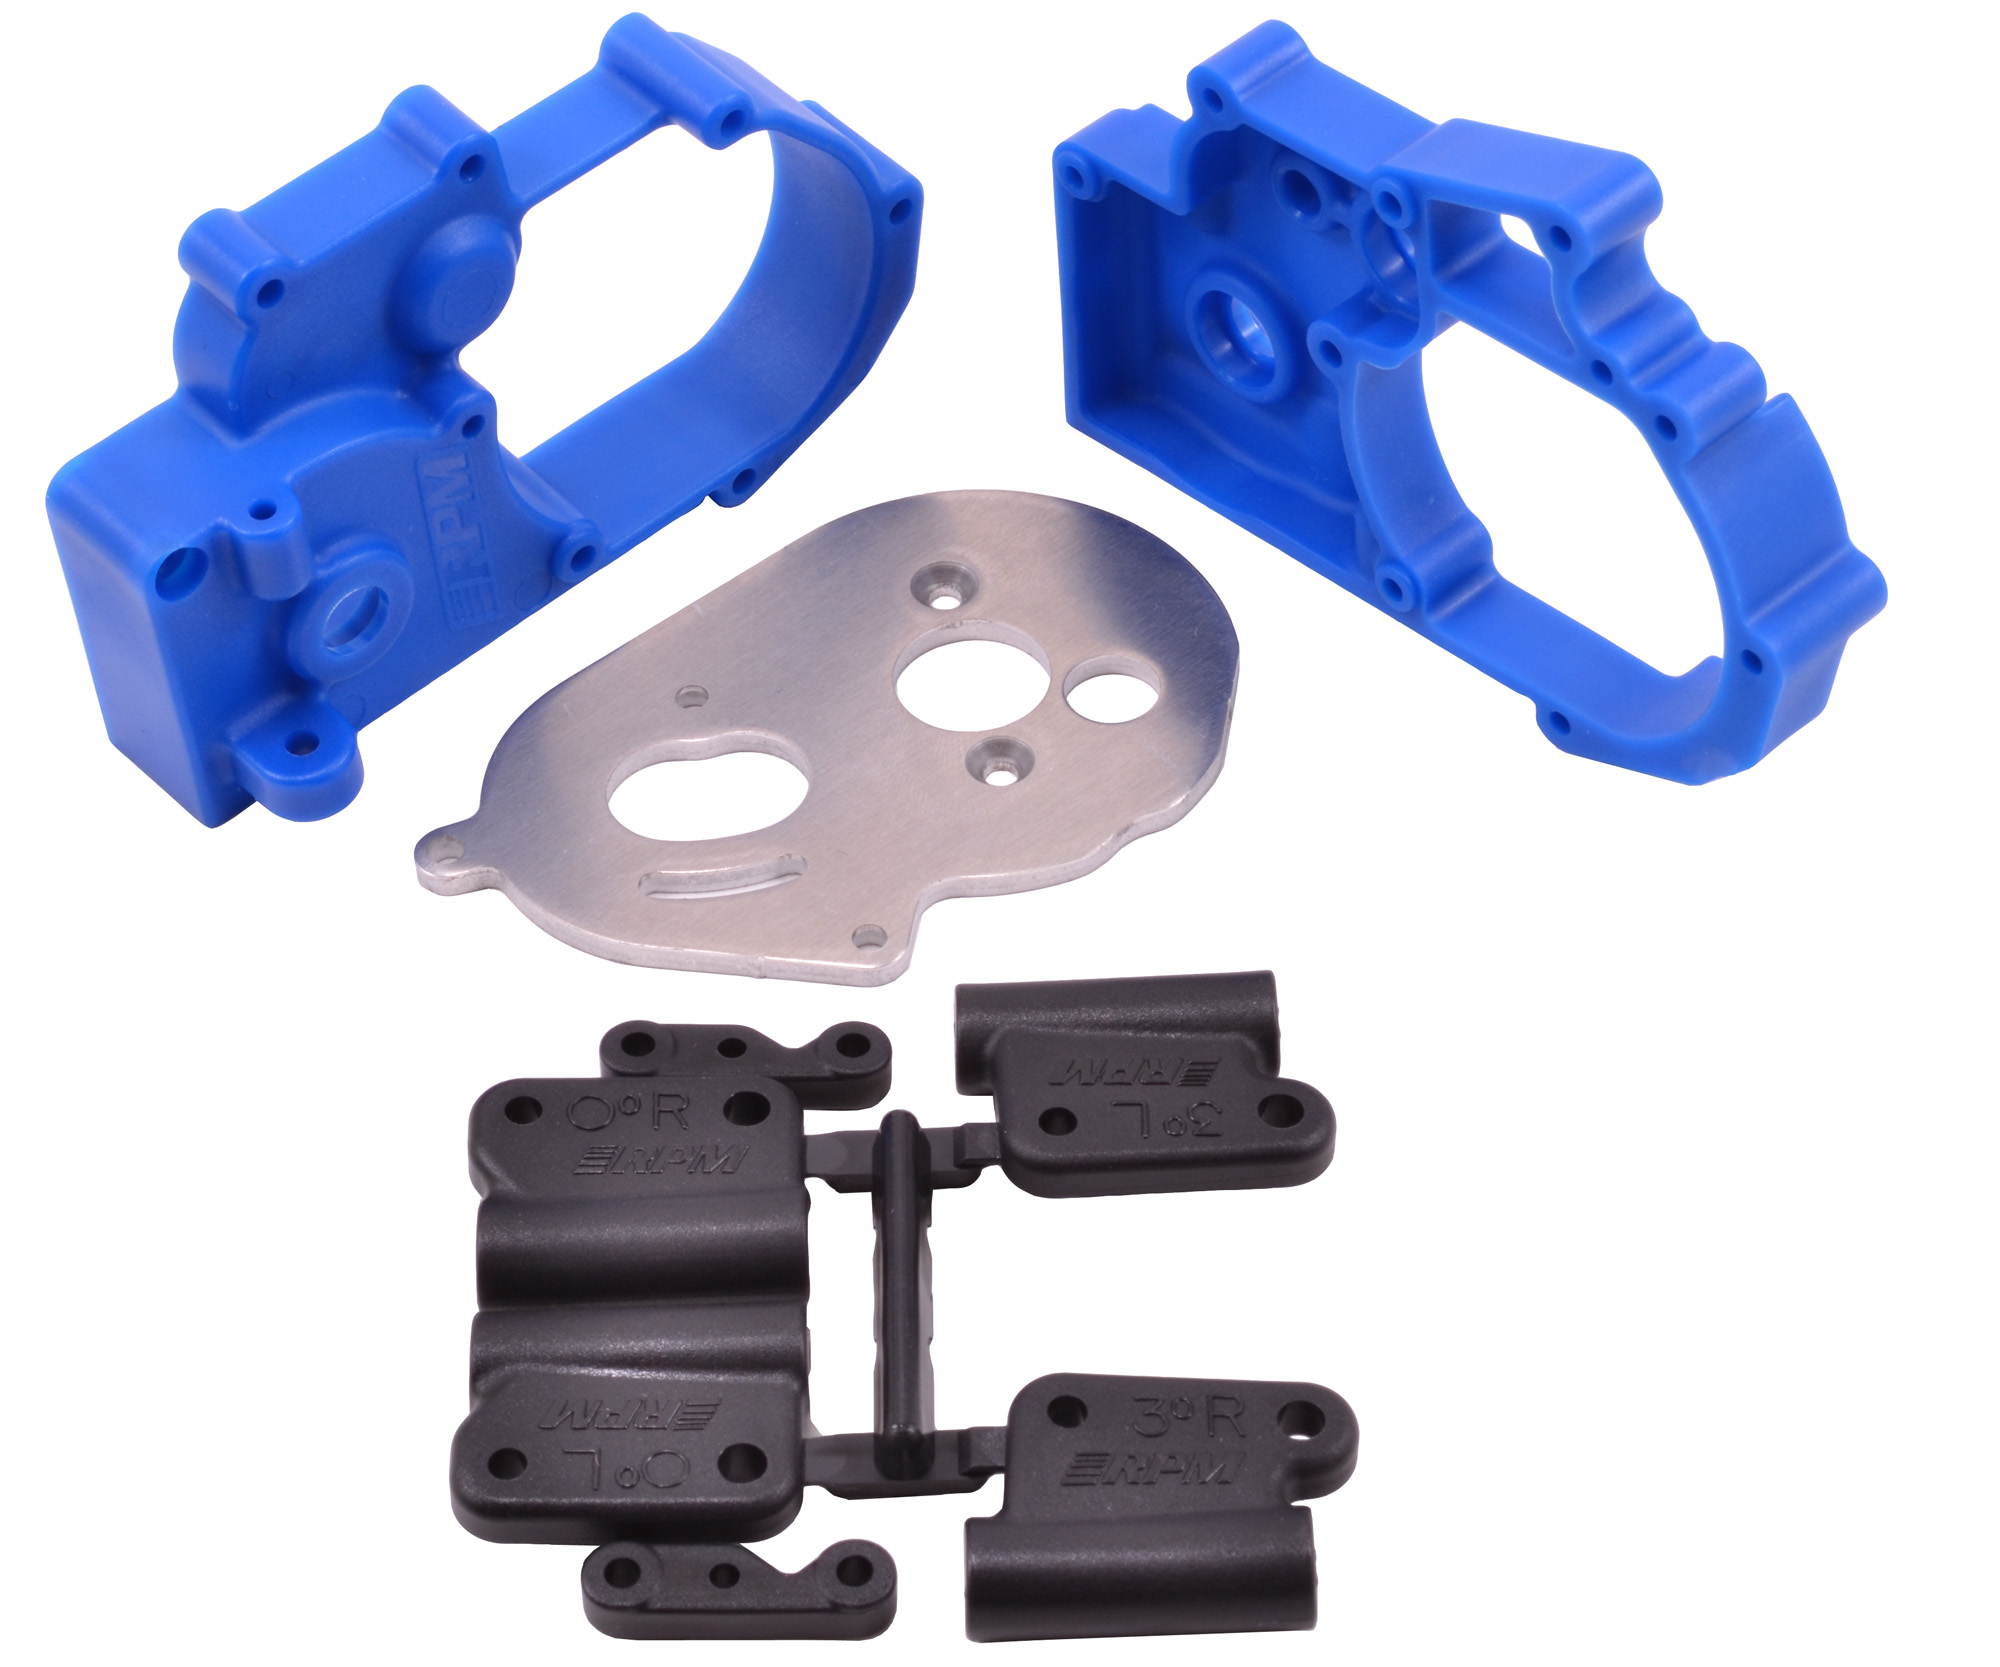 Gearbox Housing and Rear Mounts for the Traxxas Slash 2wd, e-Rustler, e-Stampede & Bandit